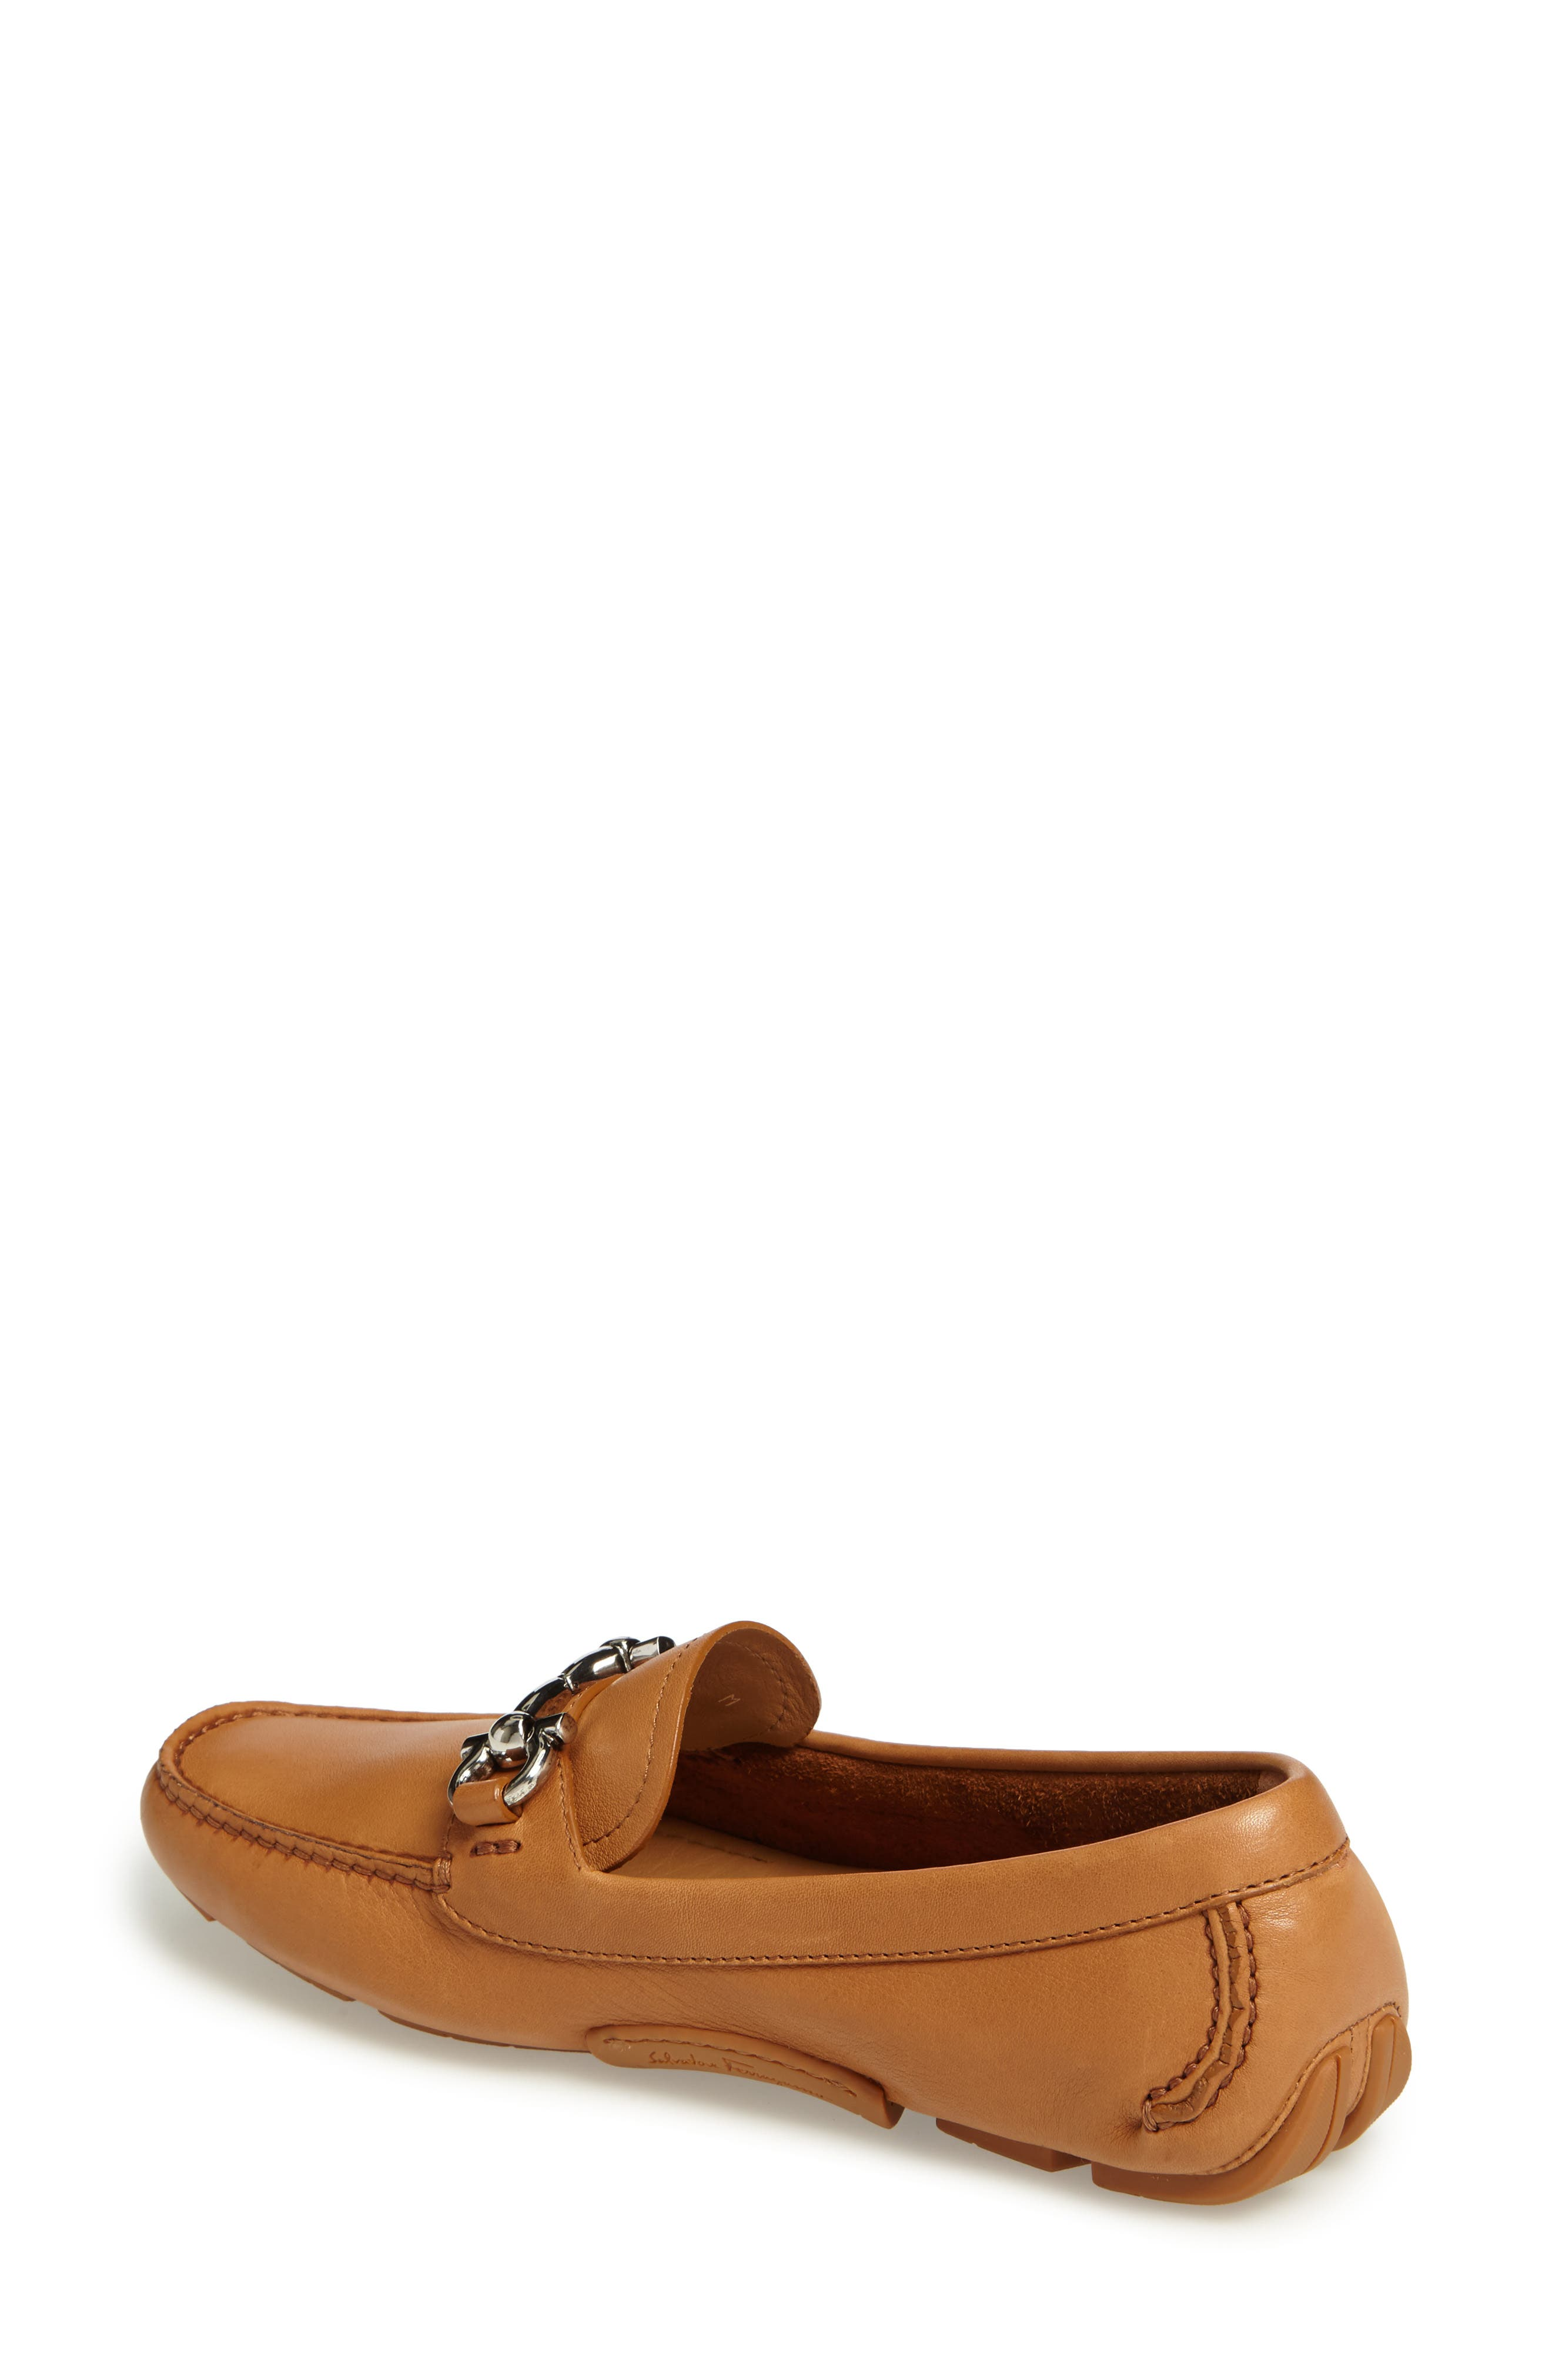 Parigi Loafer,                             Alternate thumbnail 6, color,